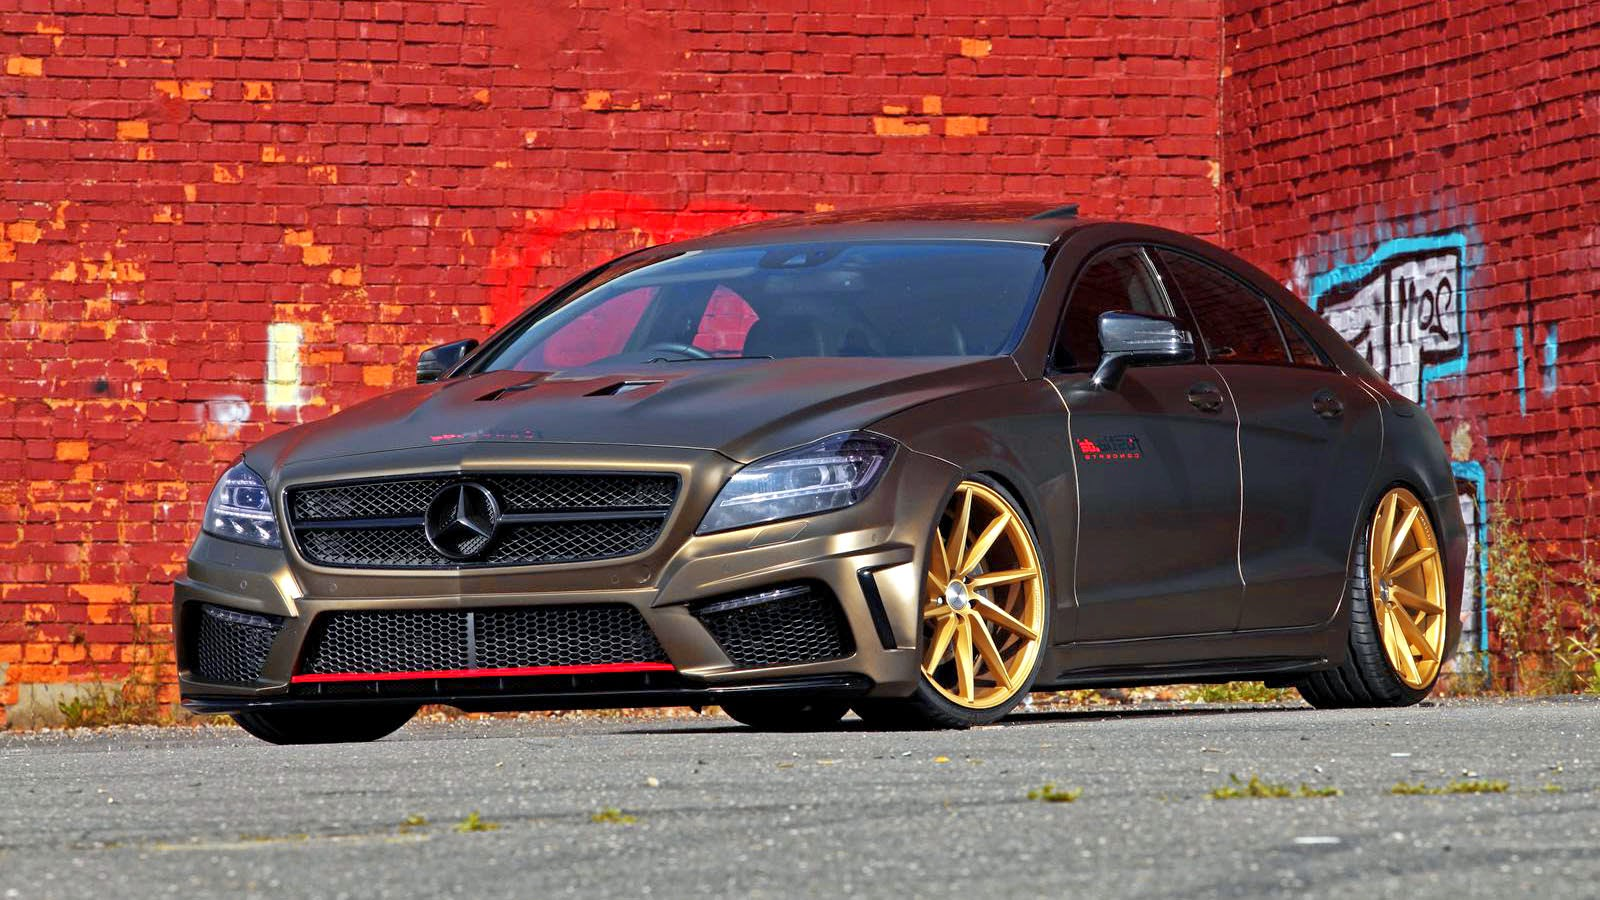 Mercedes Benz CLS 350 CDI Modified  Concept Sport Car Design